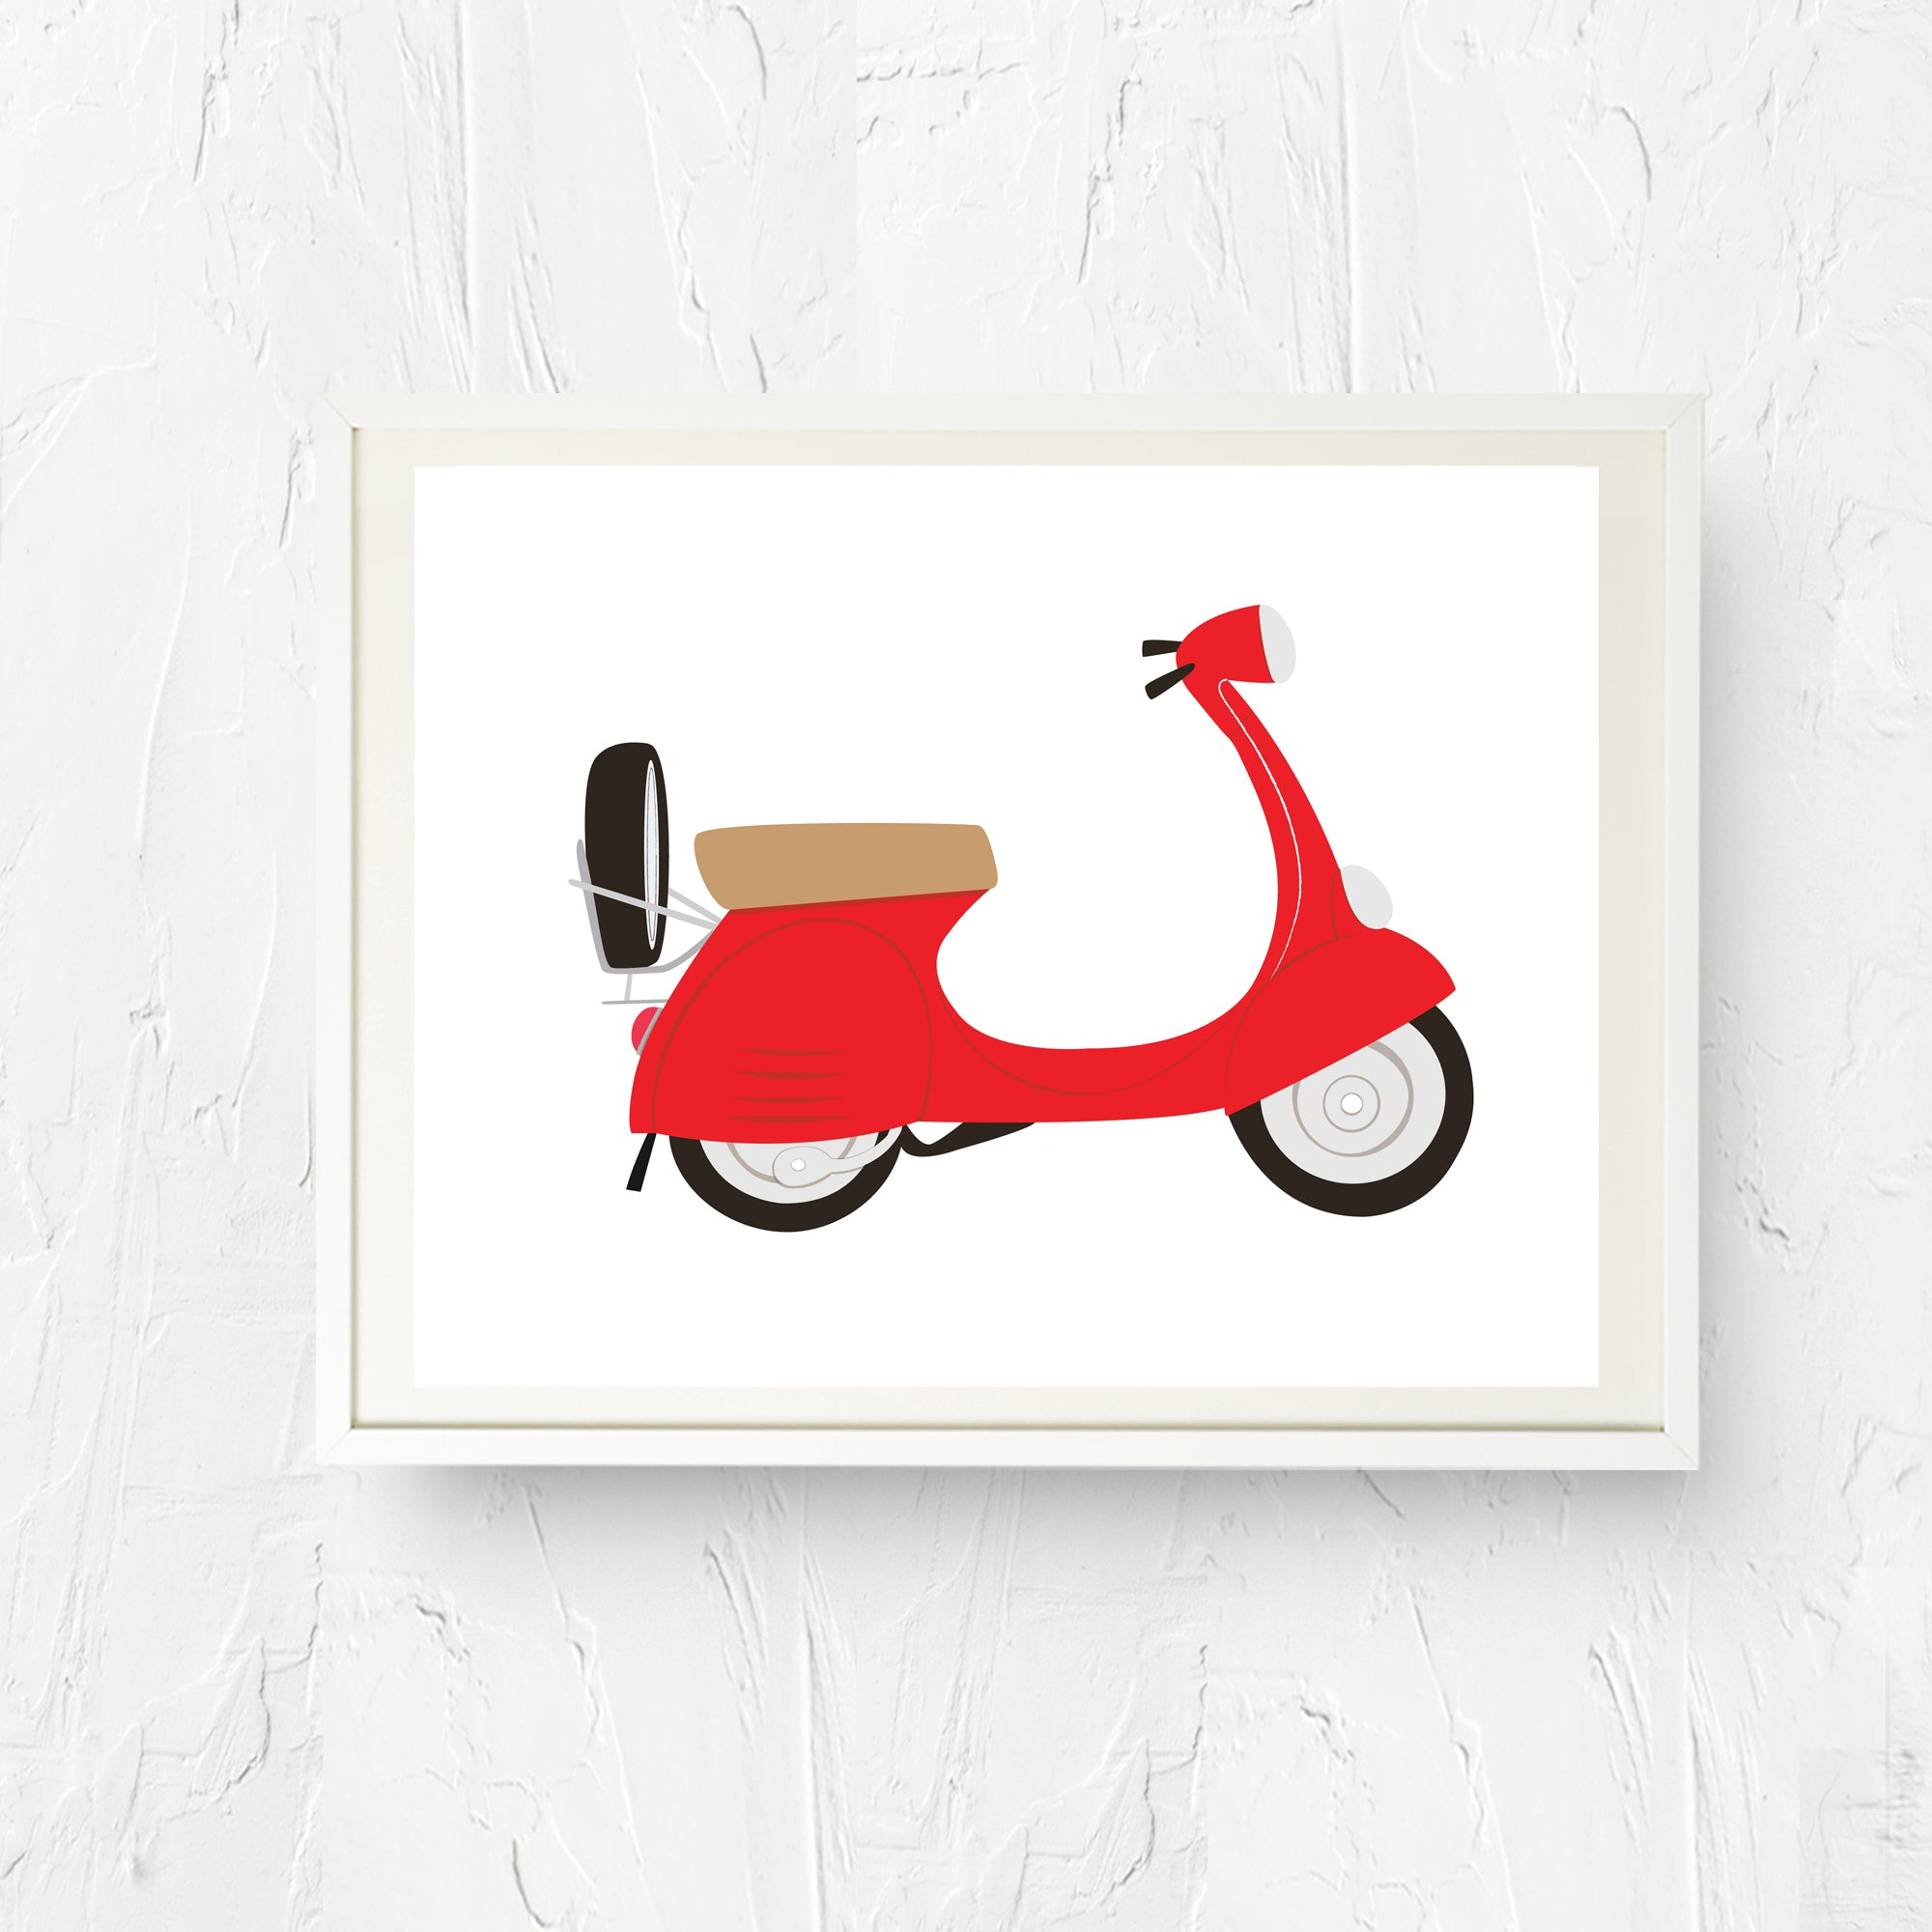 8x10, 11x14, art print, physical print, wall decor, free shipping, sale, coupon code, red vespa, green vespa, italian scooter, vespa art, vespa wall art